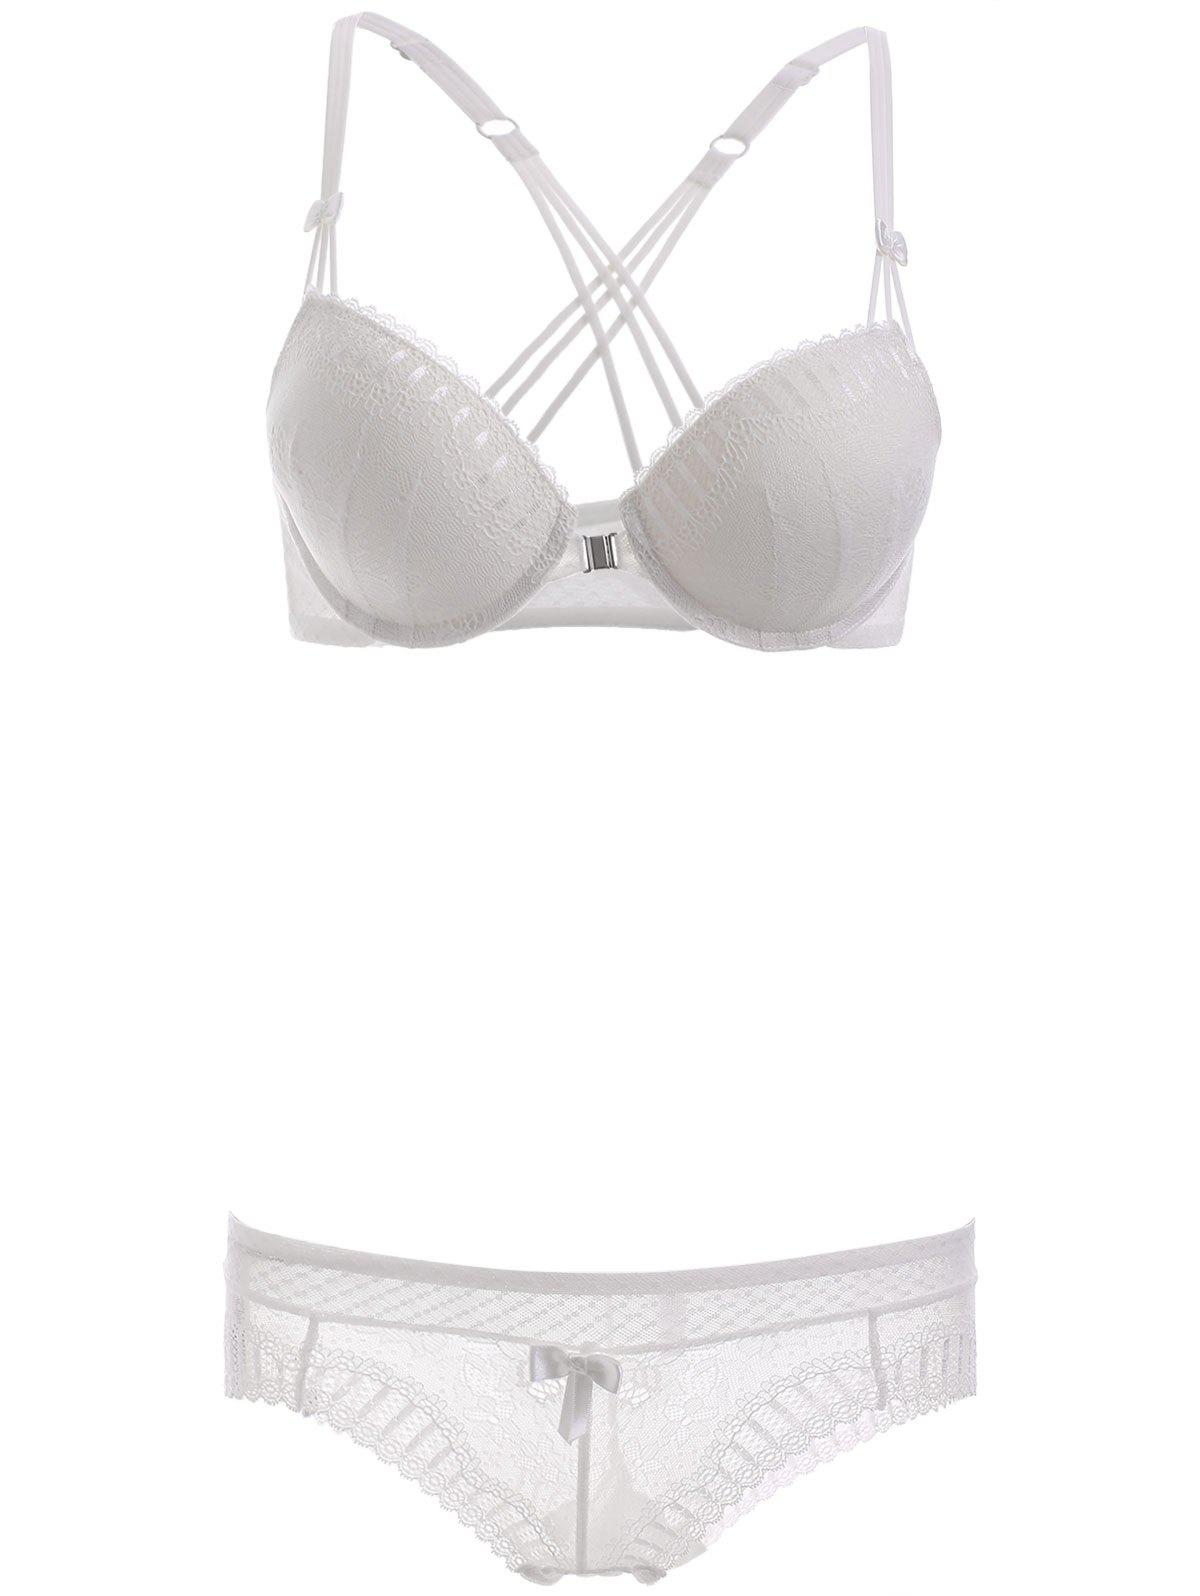 Front Closure Strappy Bra Set with Lace - WHITE 85C